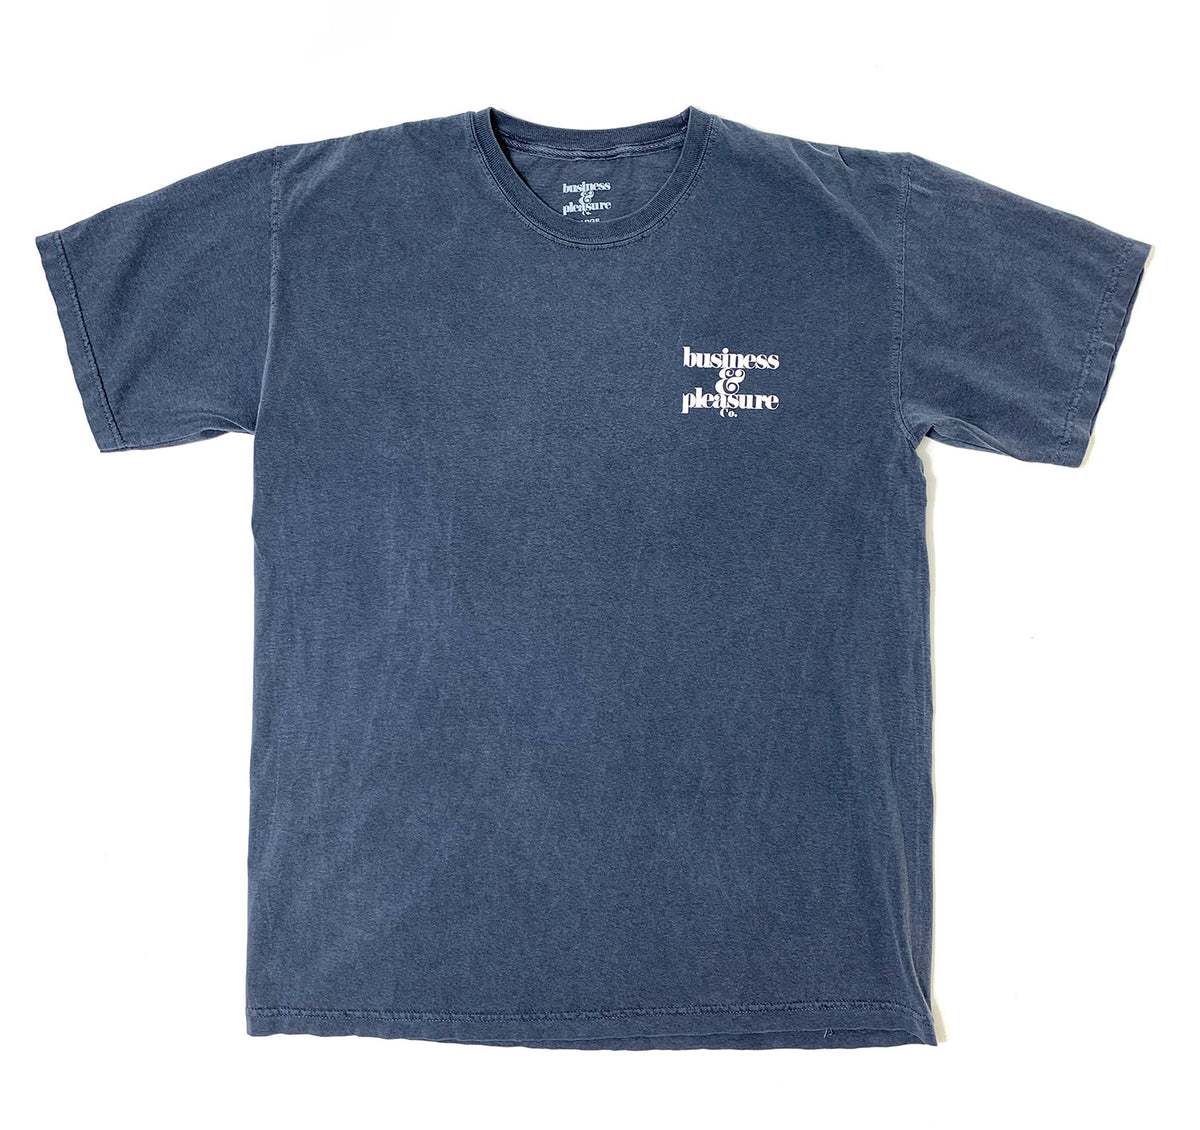 The B&PCO. Tee - Lauren's Navy - Business & Pleasure Co